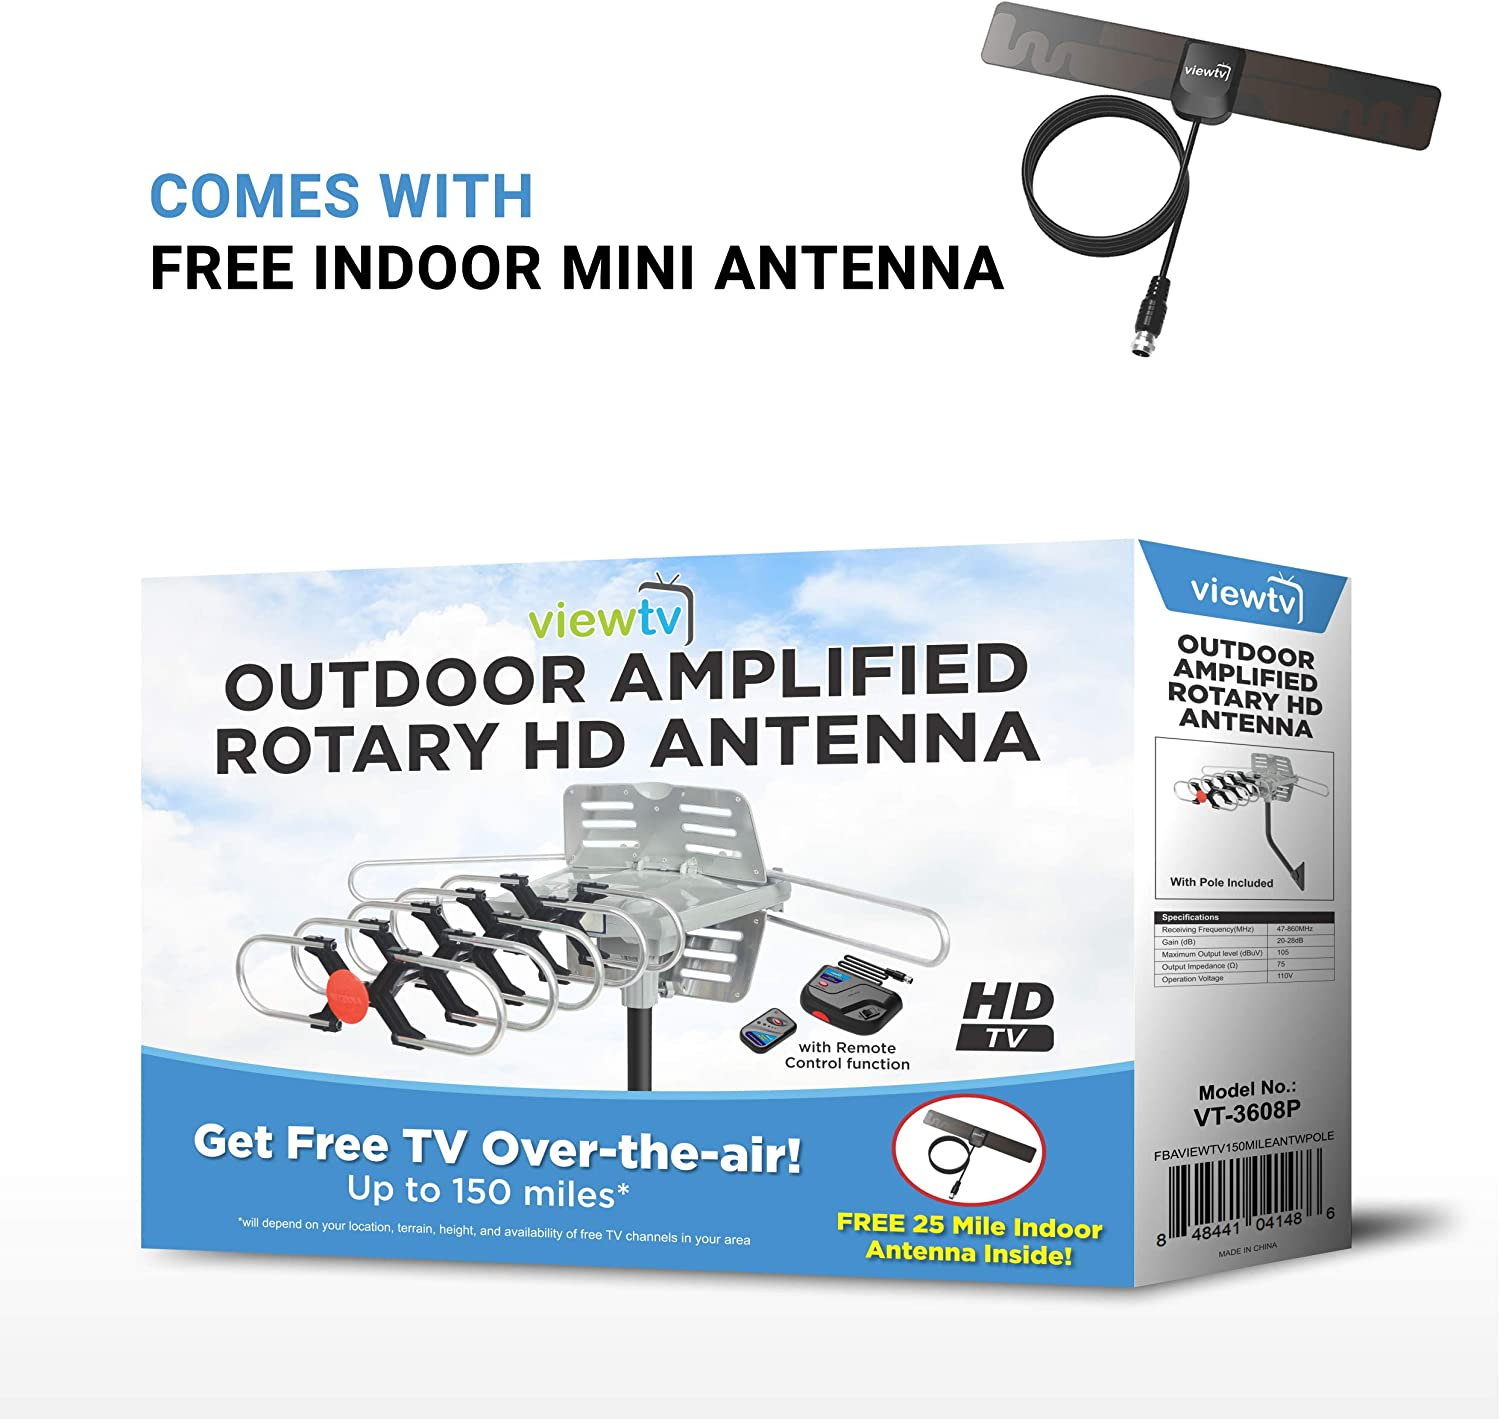 120 Miles Long Range Outdoor Antenna Wireless Remote and Mounting Pole Included ViewTV 120 Mile Range Outdoor//Attic Amplified Antenna 360/° Rotation 120 Miles Range